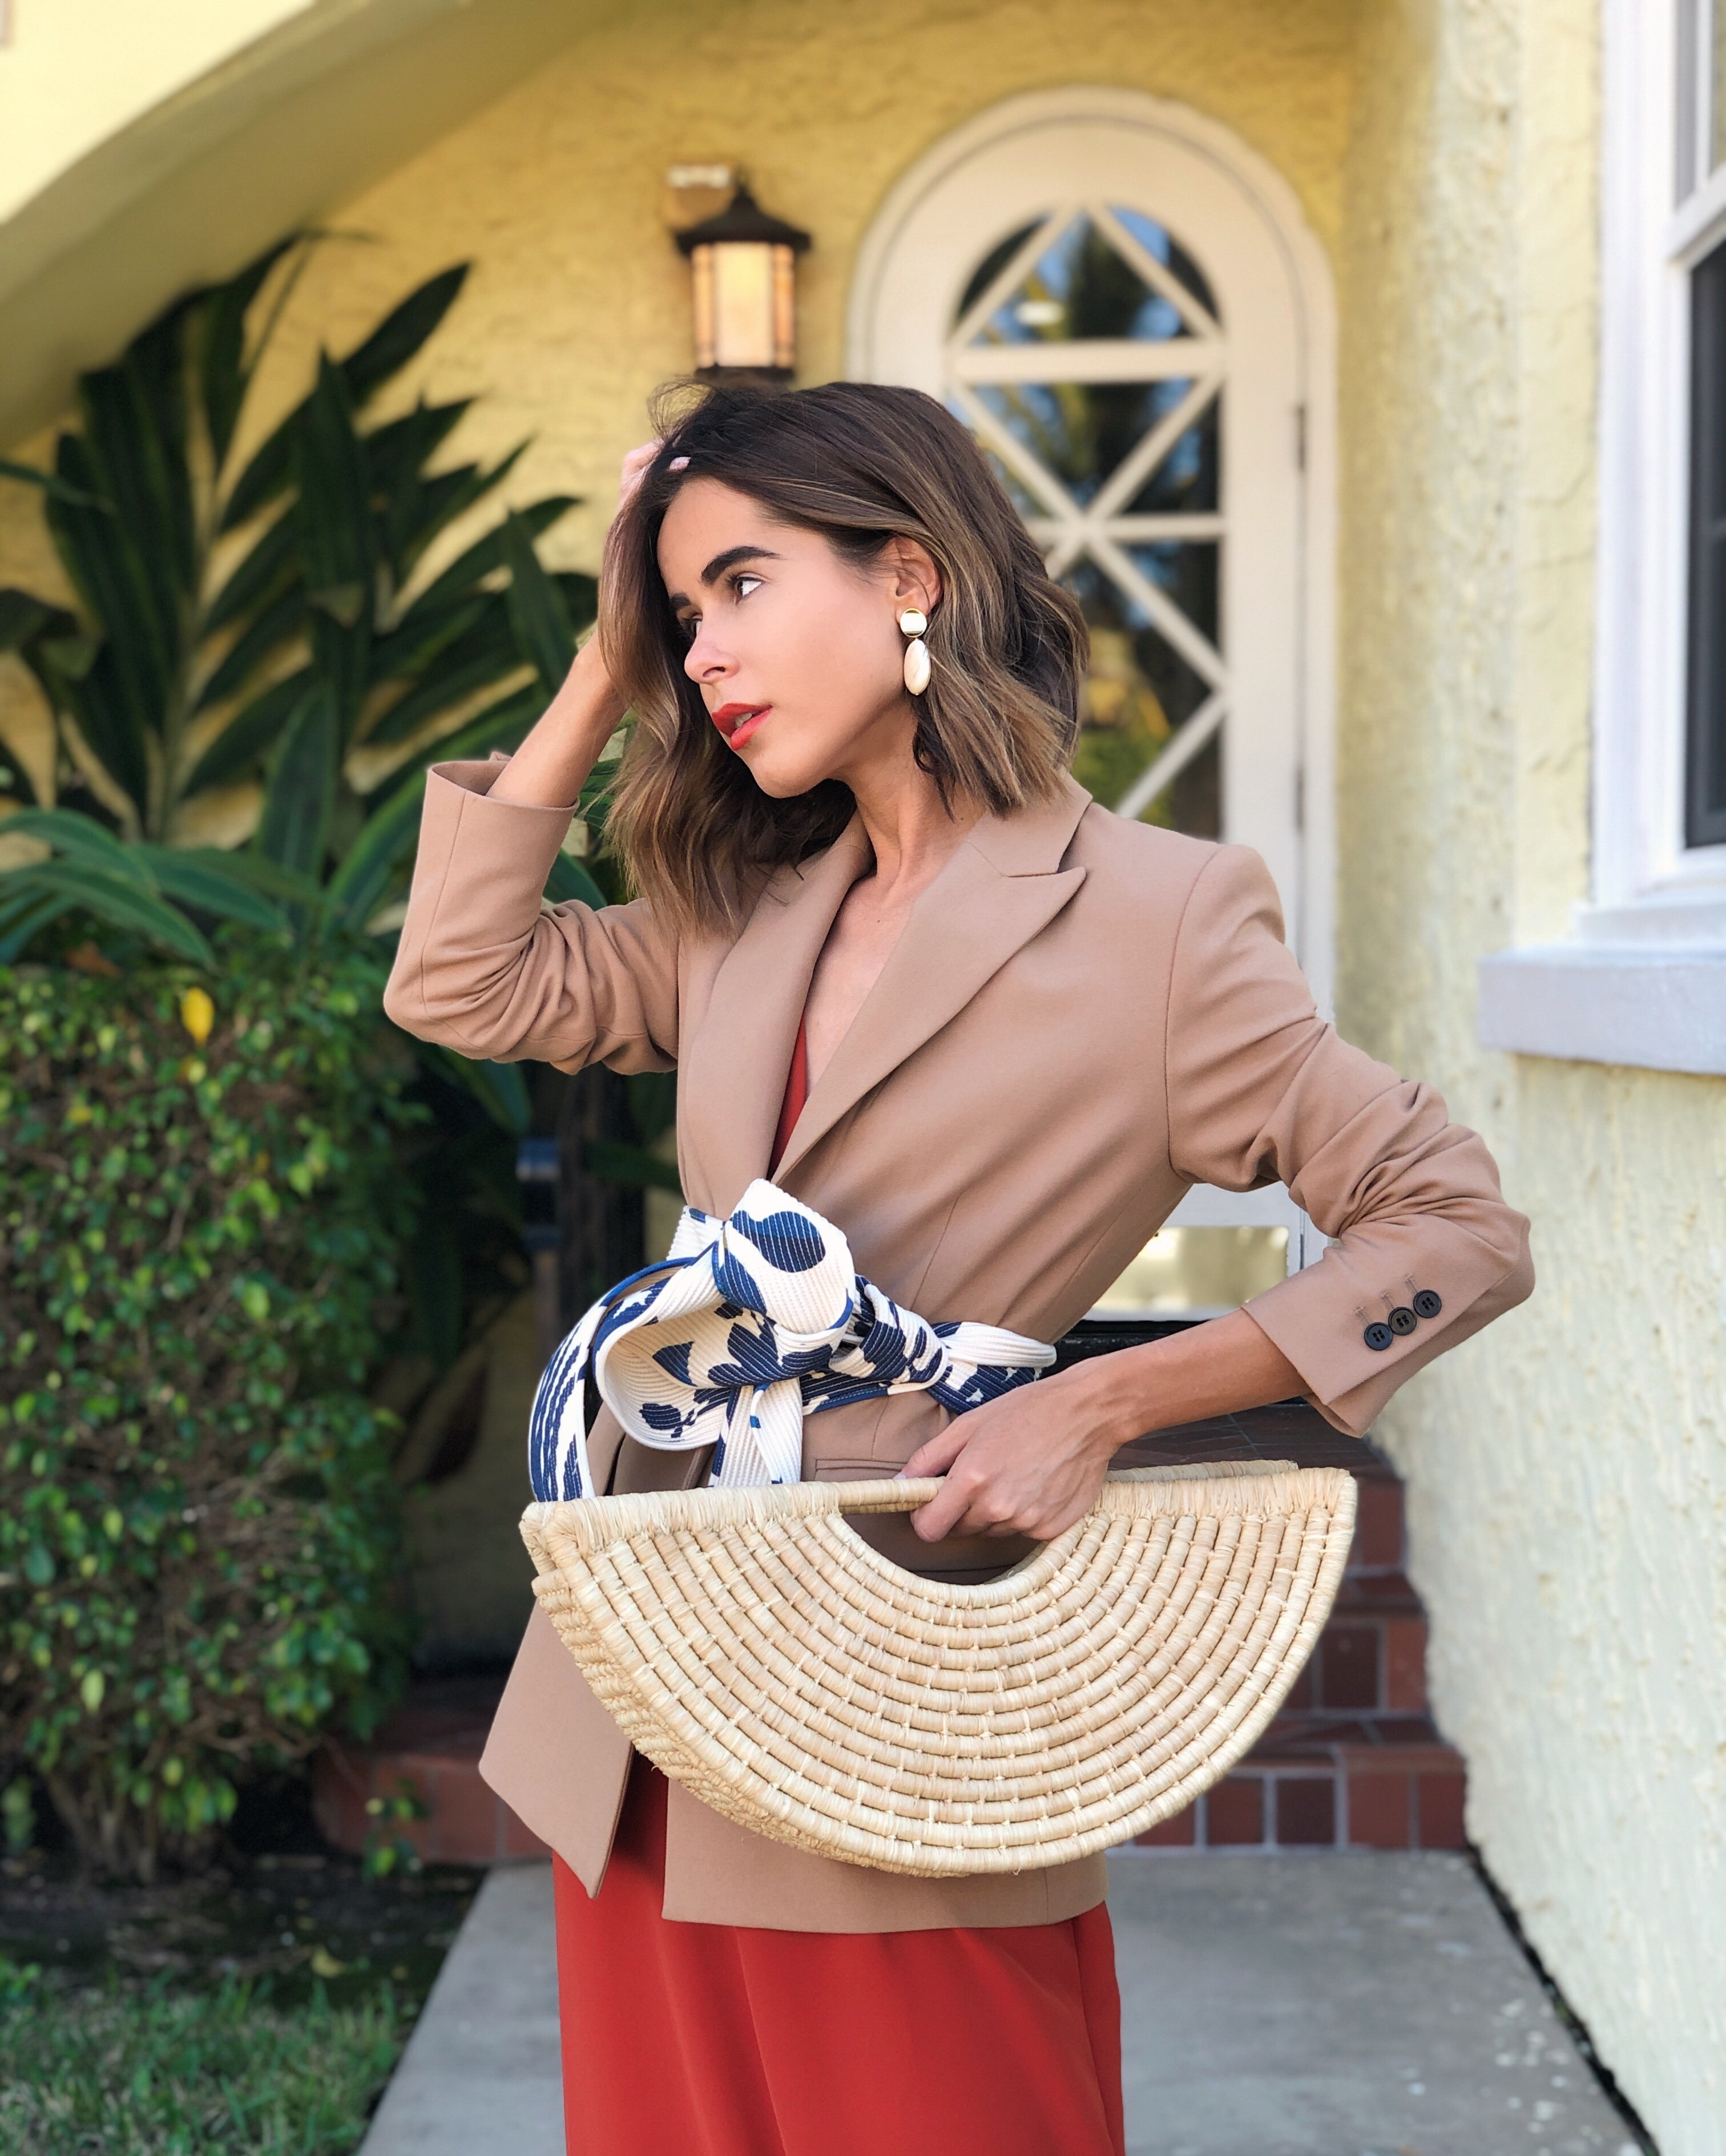 Stephanie Hill at The Style Bungalow wears ootd featuring A.L.C dress, Maje blazer, Johanna Ortiz belt and more